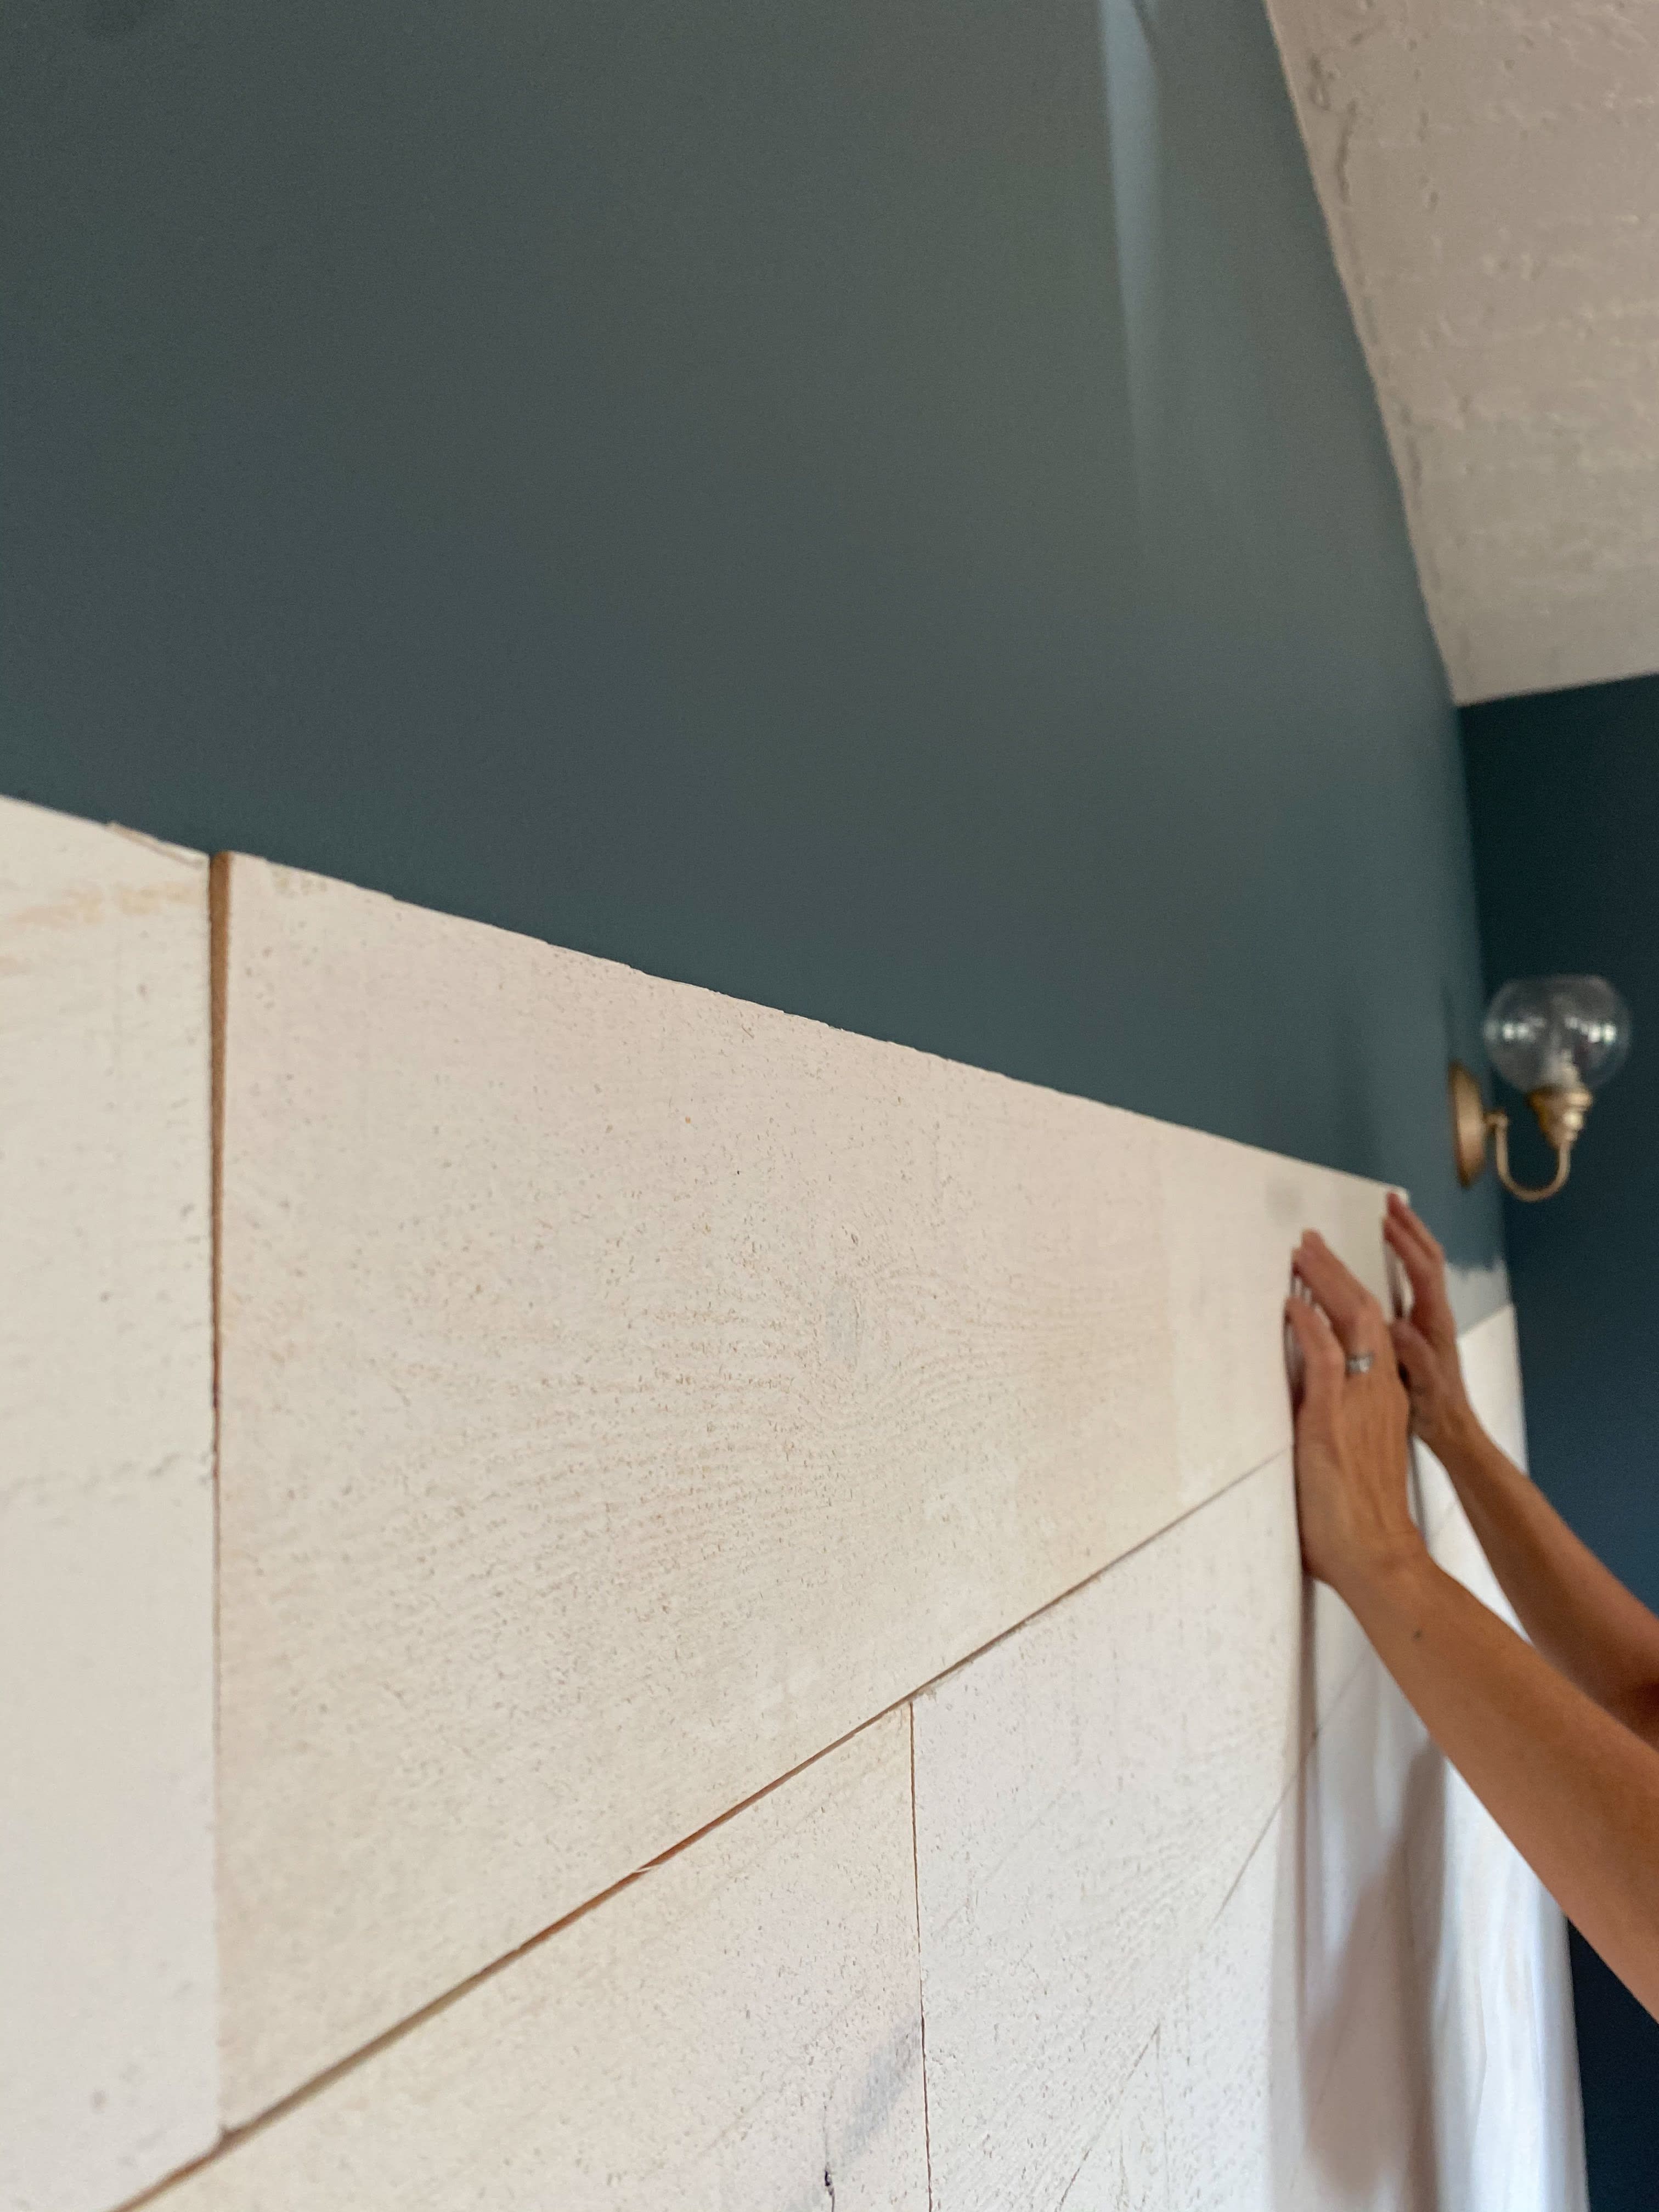 Hands placing a stikwood peel and stick Hamptons shiplap plank on a green painted wall.